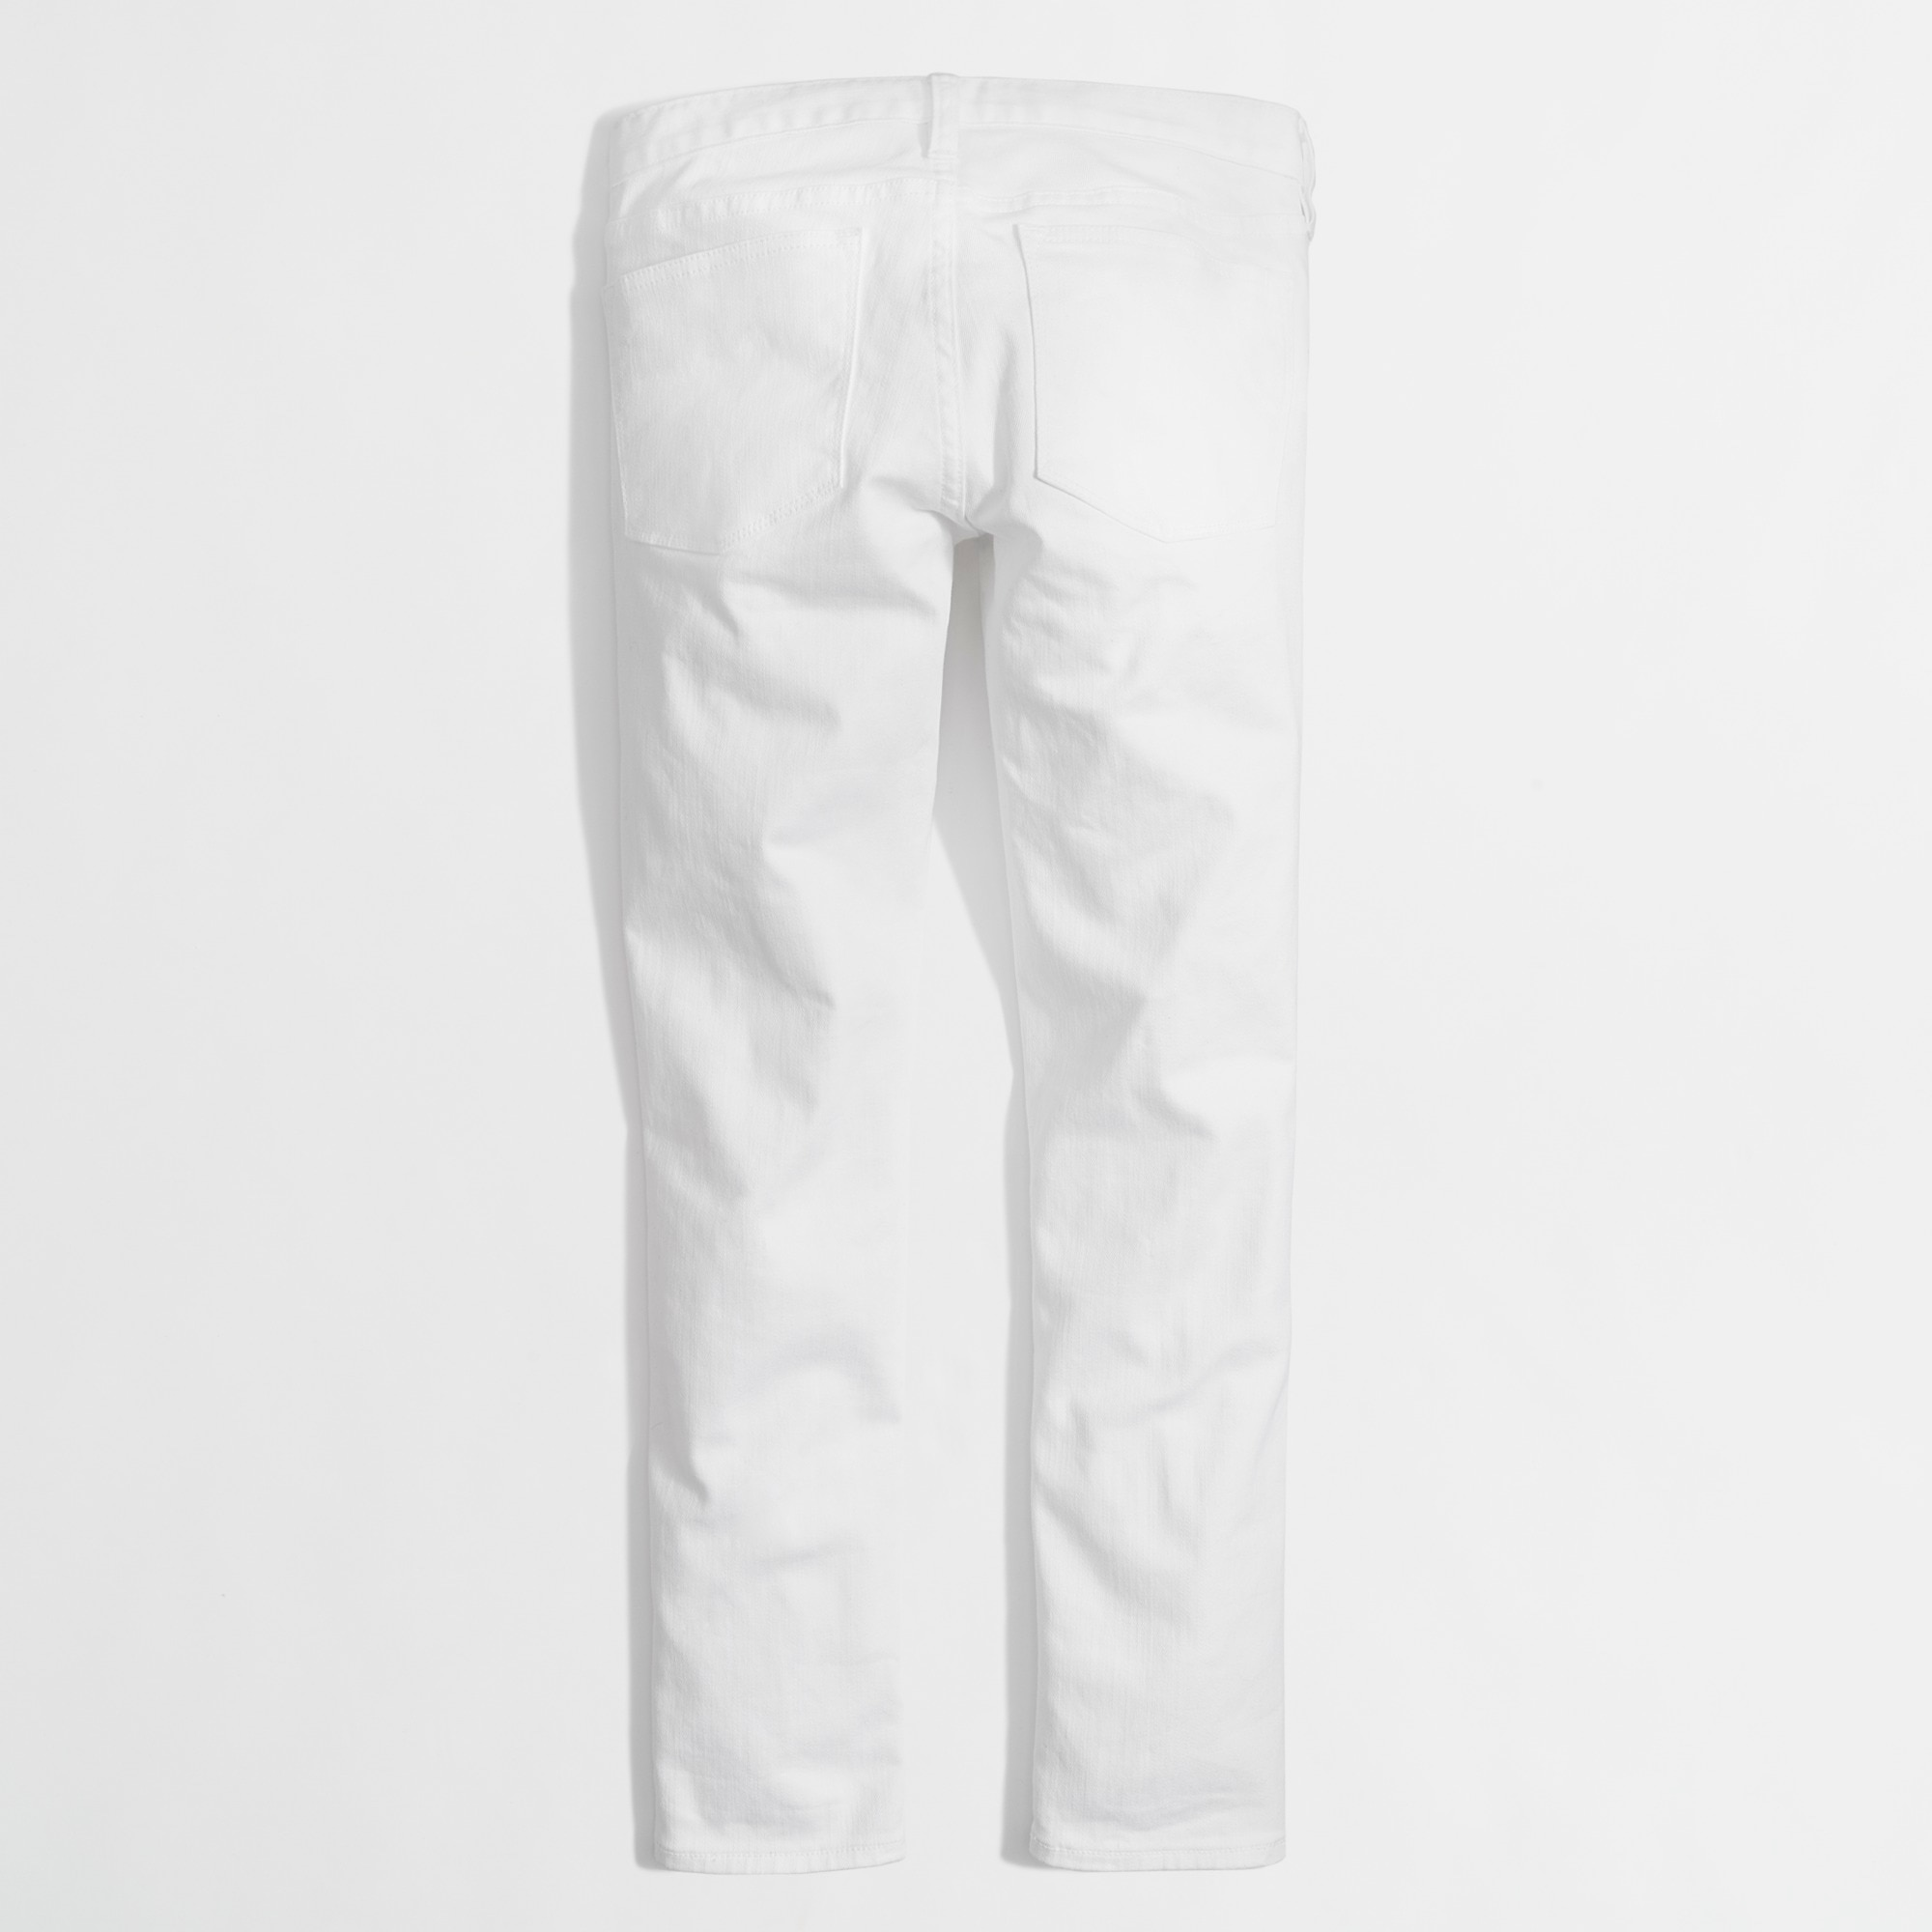 "Image 2 for White skinny ankle jean with 28"" inseam"